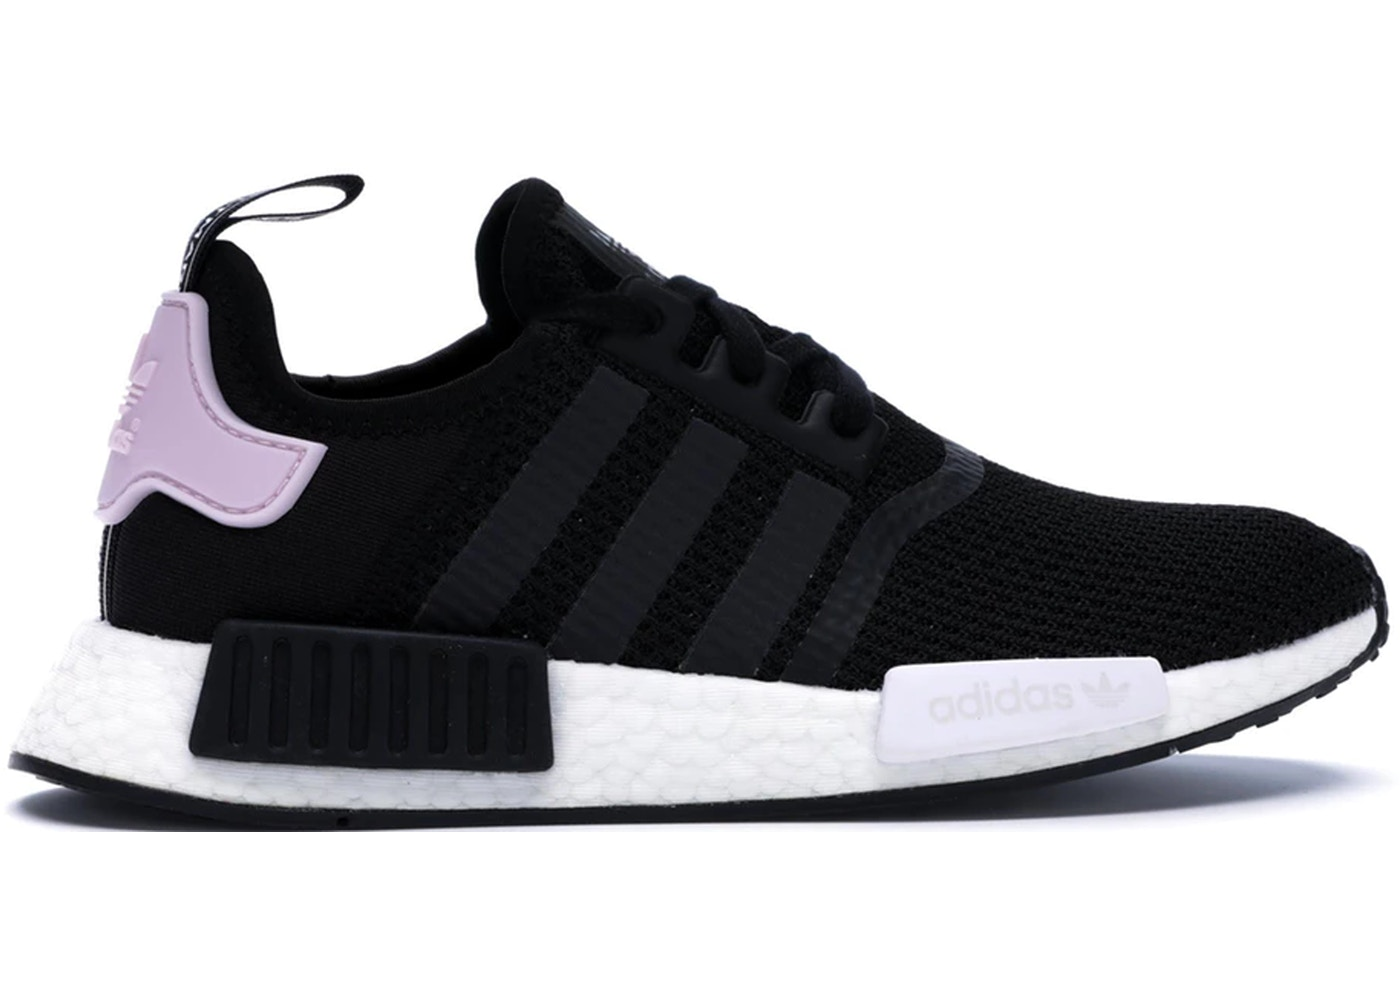 803a97e7f adidas NMD Shoes - Release Date